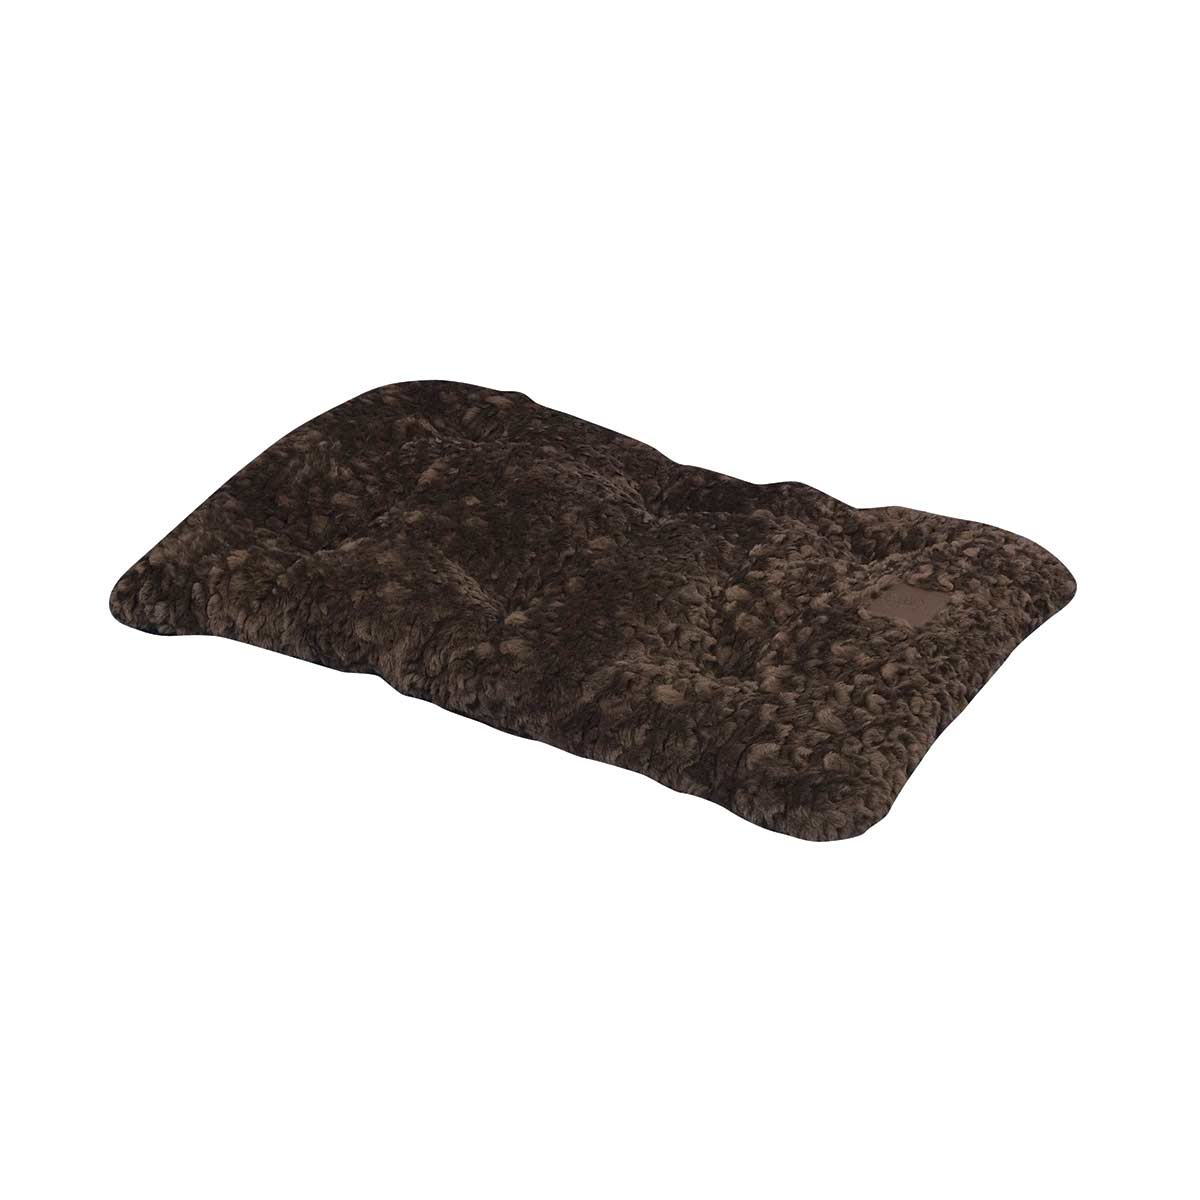 Snoozzy Cozy Comforter 35 inches by 22 inches in Chocolate Brown